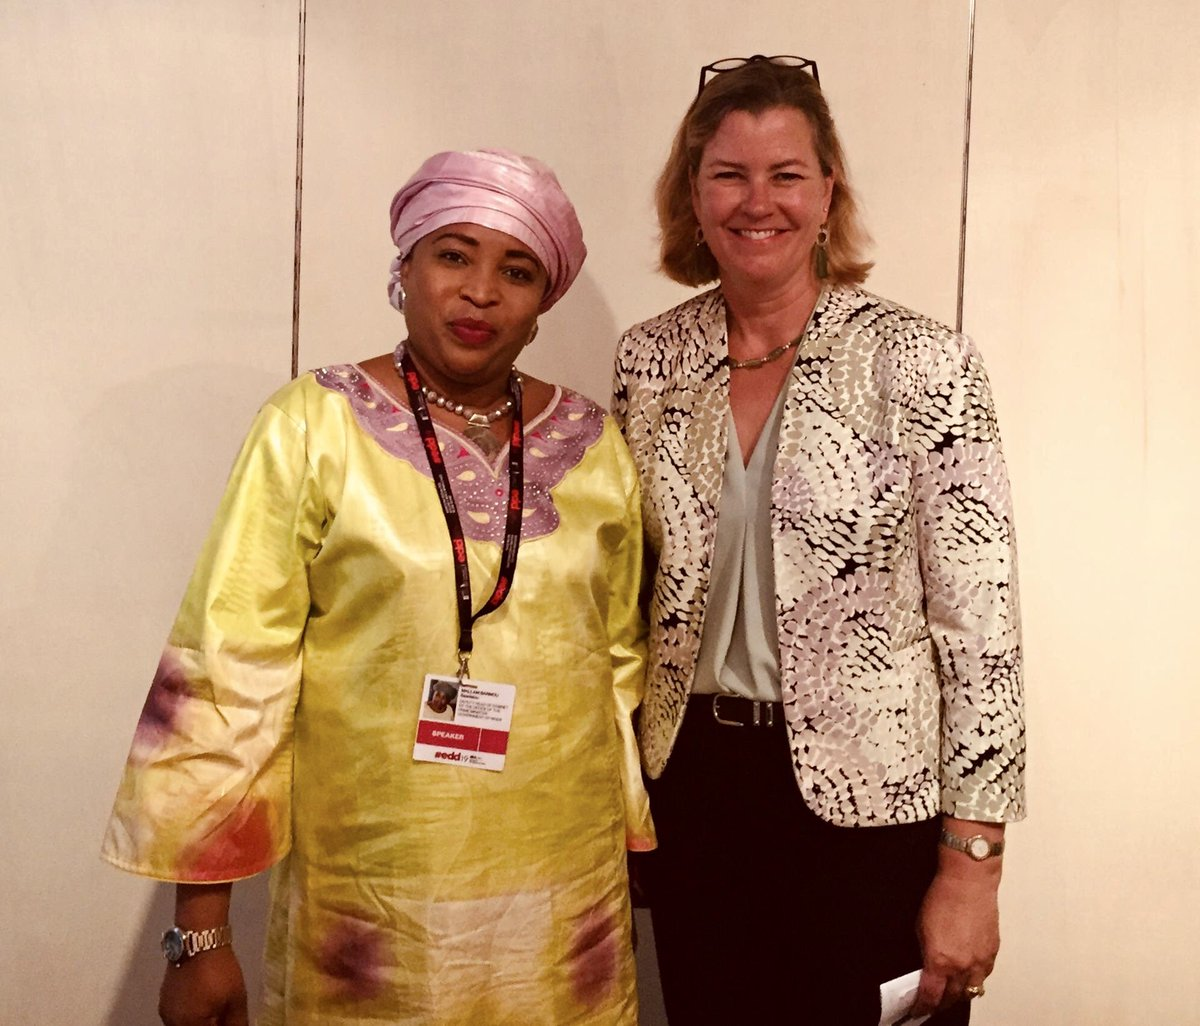 Inspiring meeting at #EDD19 with the formidable Saadatou Mallam Barmou, Office of the Prime Minister of #Niger, as always putting people at the heart of humanitarian and development work.  Niger is a key partner for #UNHCR. #GlobalGoals #ThinkTwice